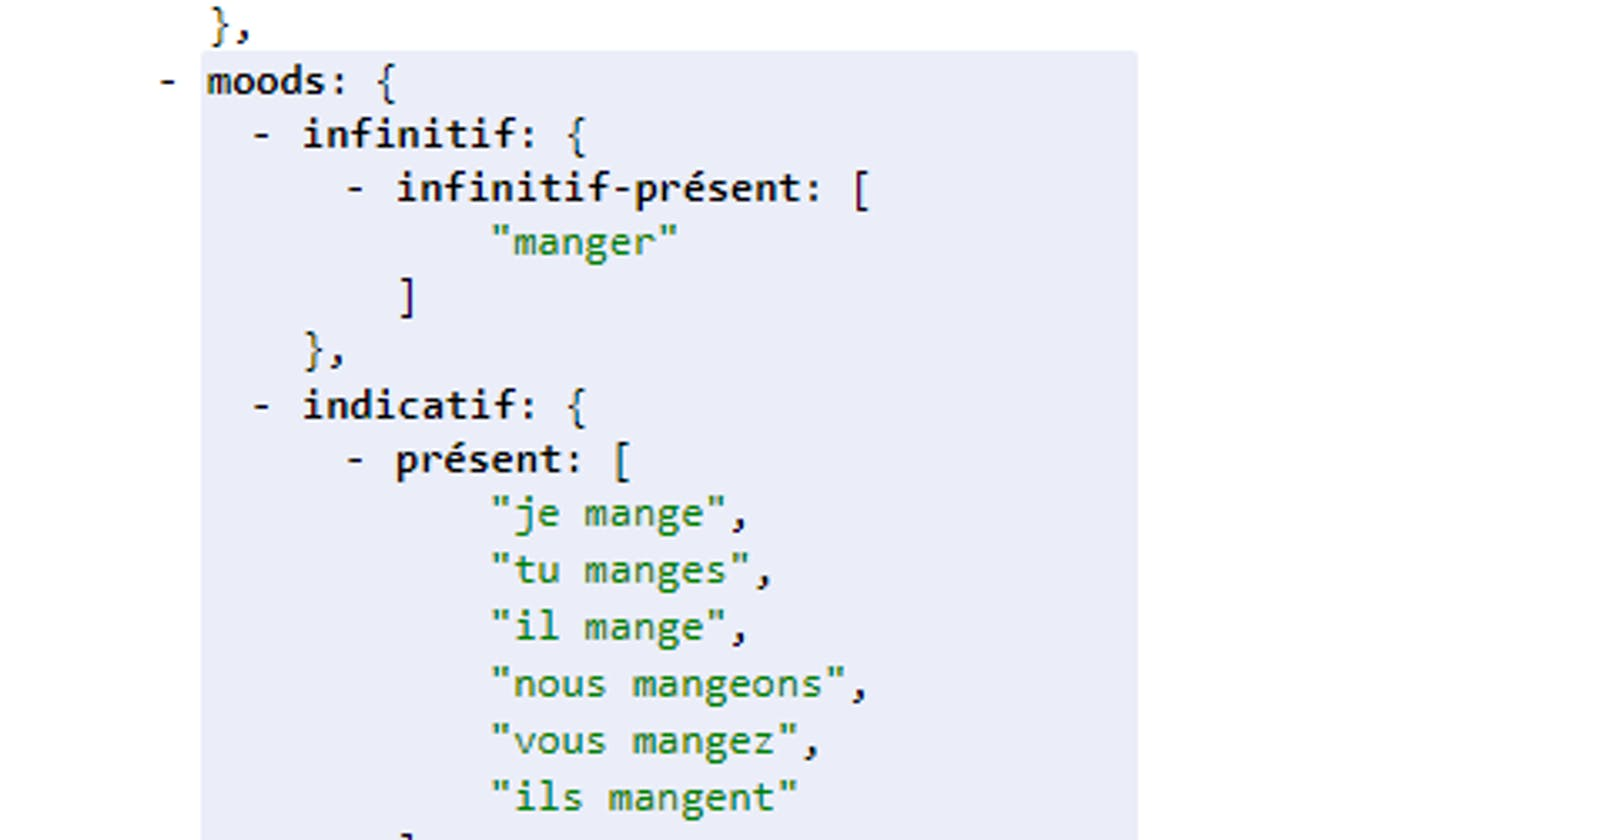 verbecc - python library, dockerized microservice and web app for verb conjugation in French, Spanish, Italian, Portuguese and Romanian, powered by ML